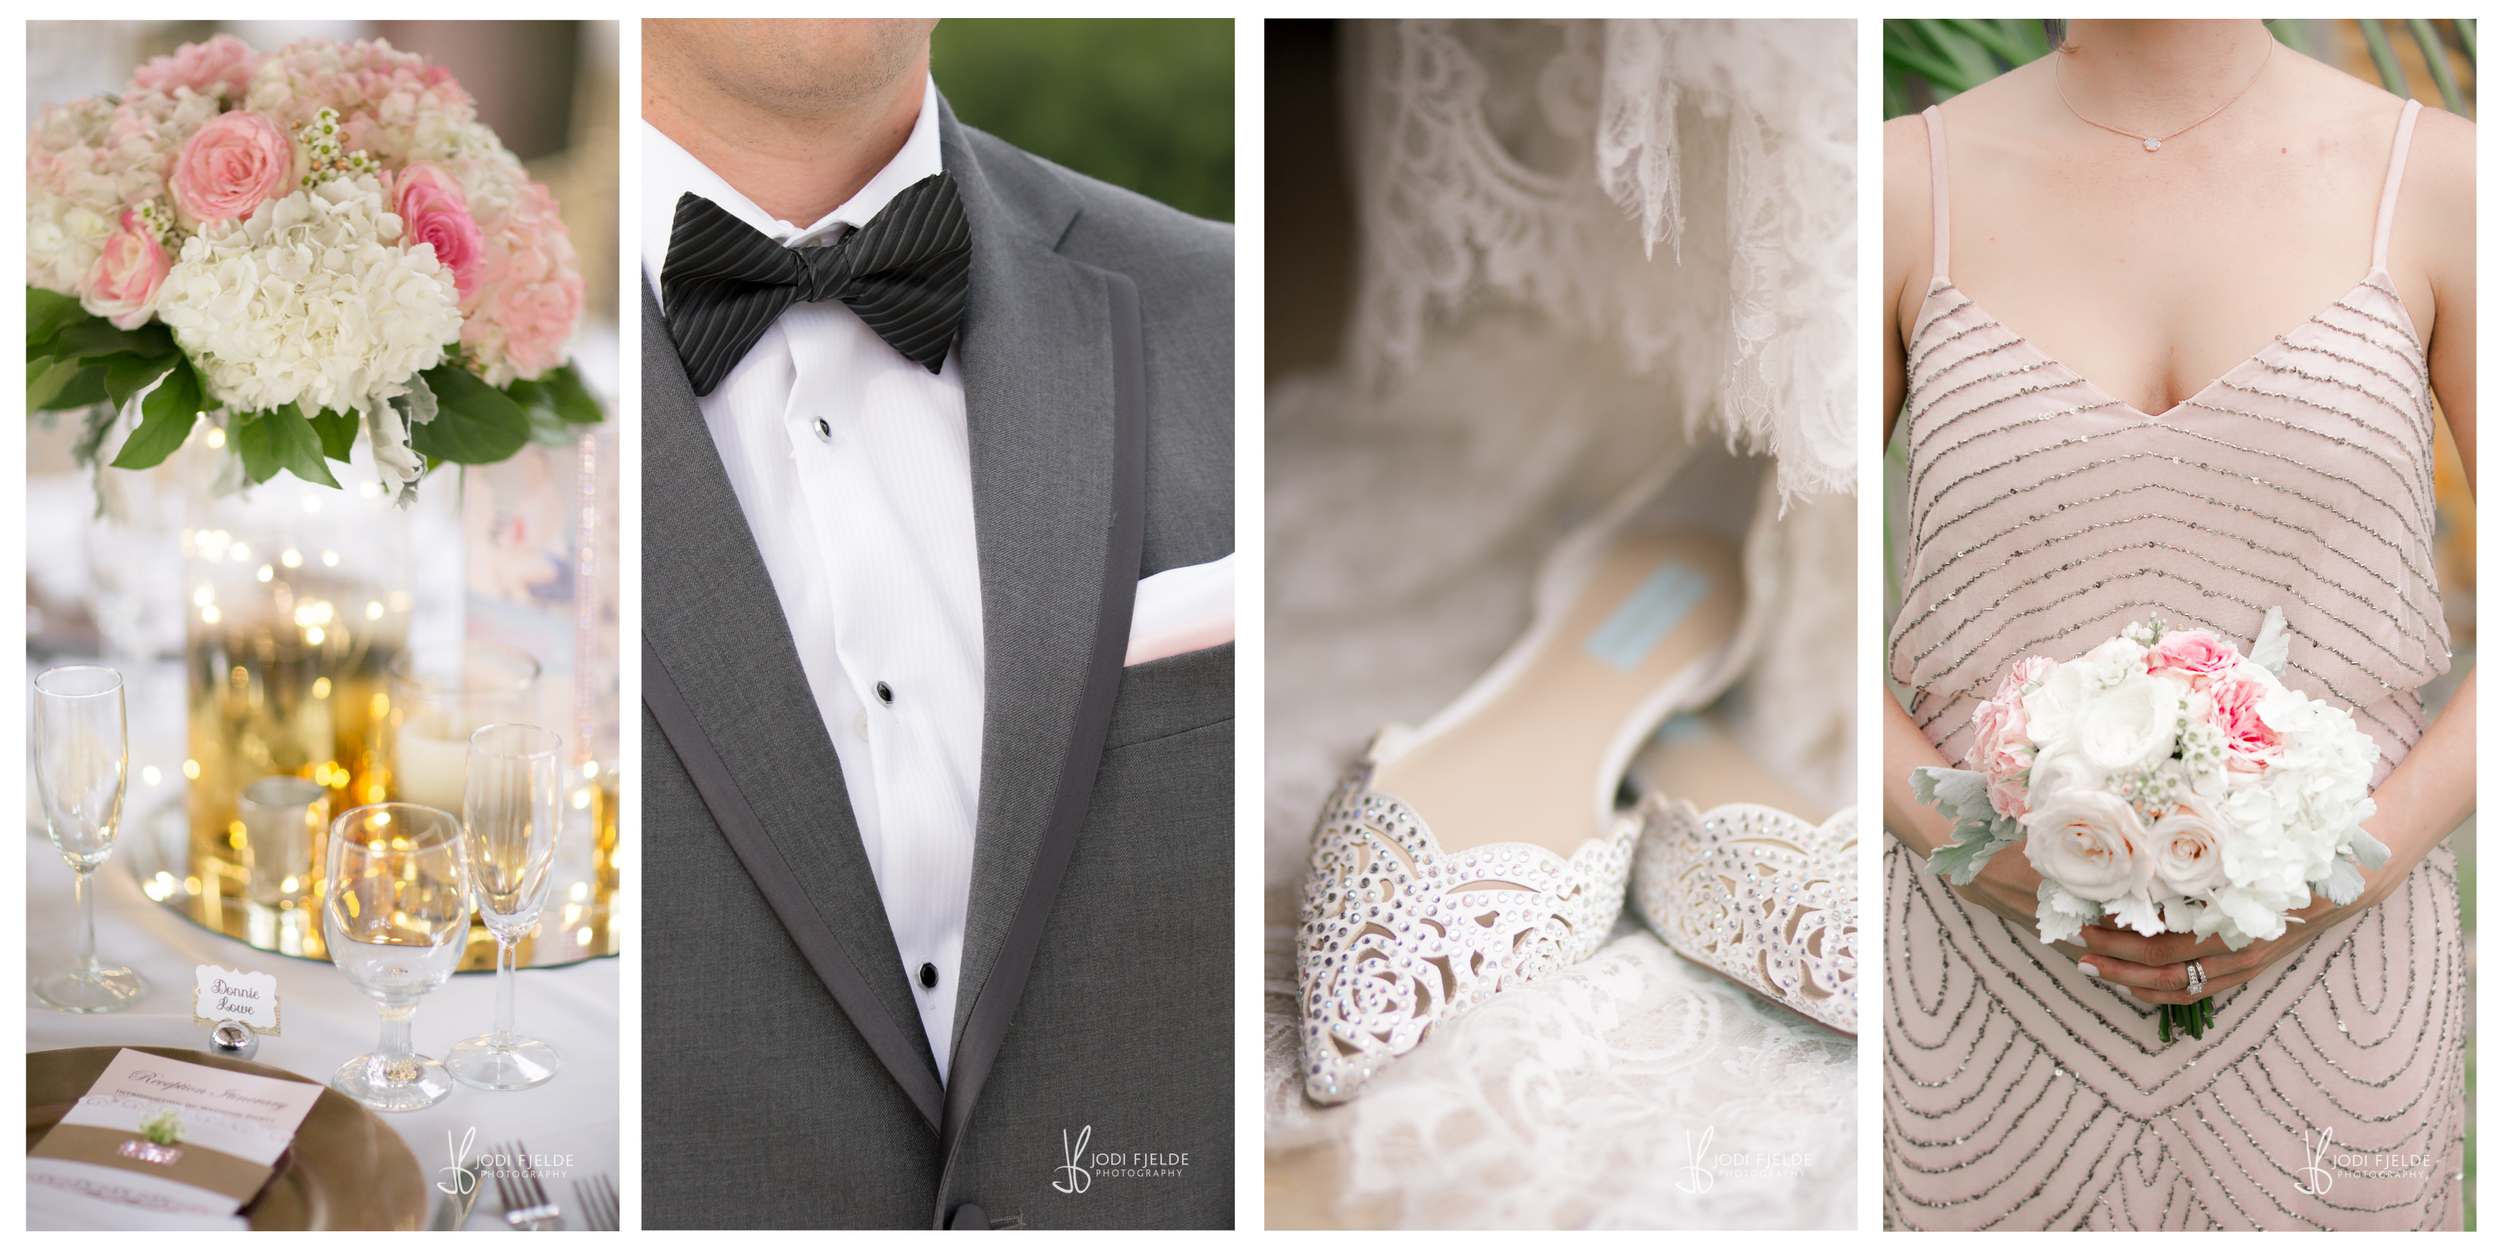 Cocconut_Cove_&_ Marina_ wedding_Kalie_and_Kurt 1-2.jpg